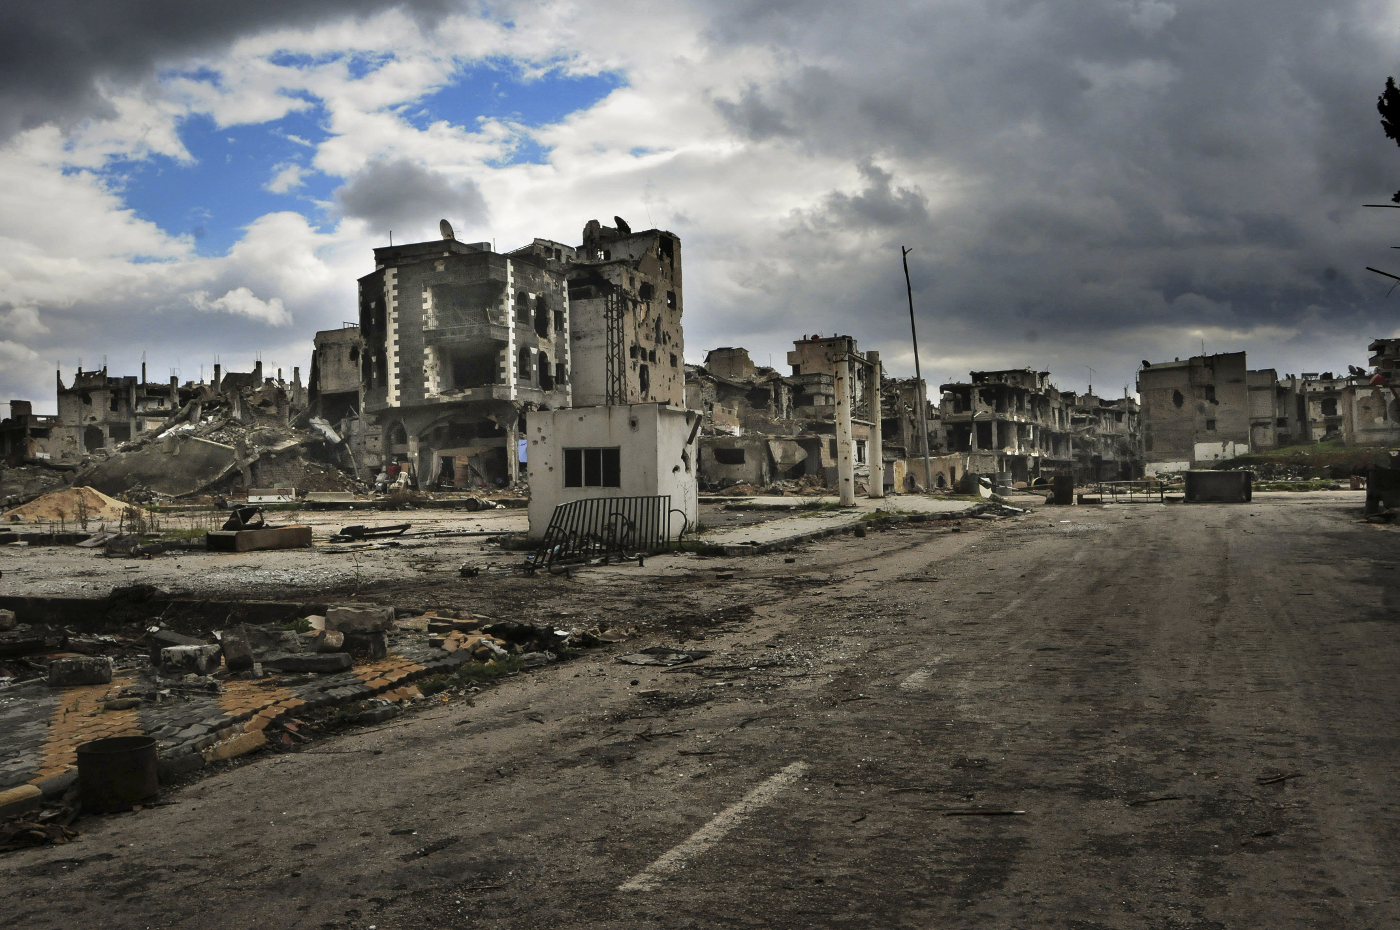 Destroyed building in Homs. Photo by Teun Anthony Voeten/ICRC.